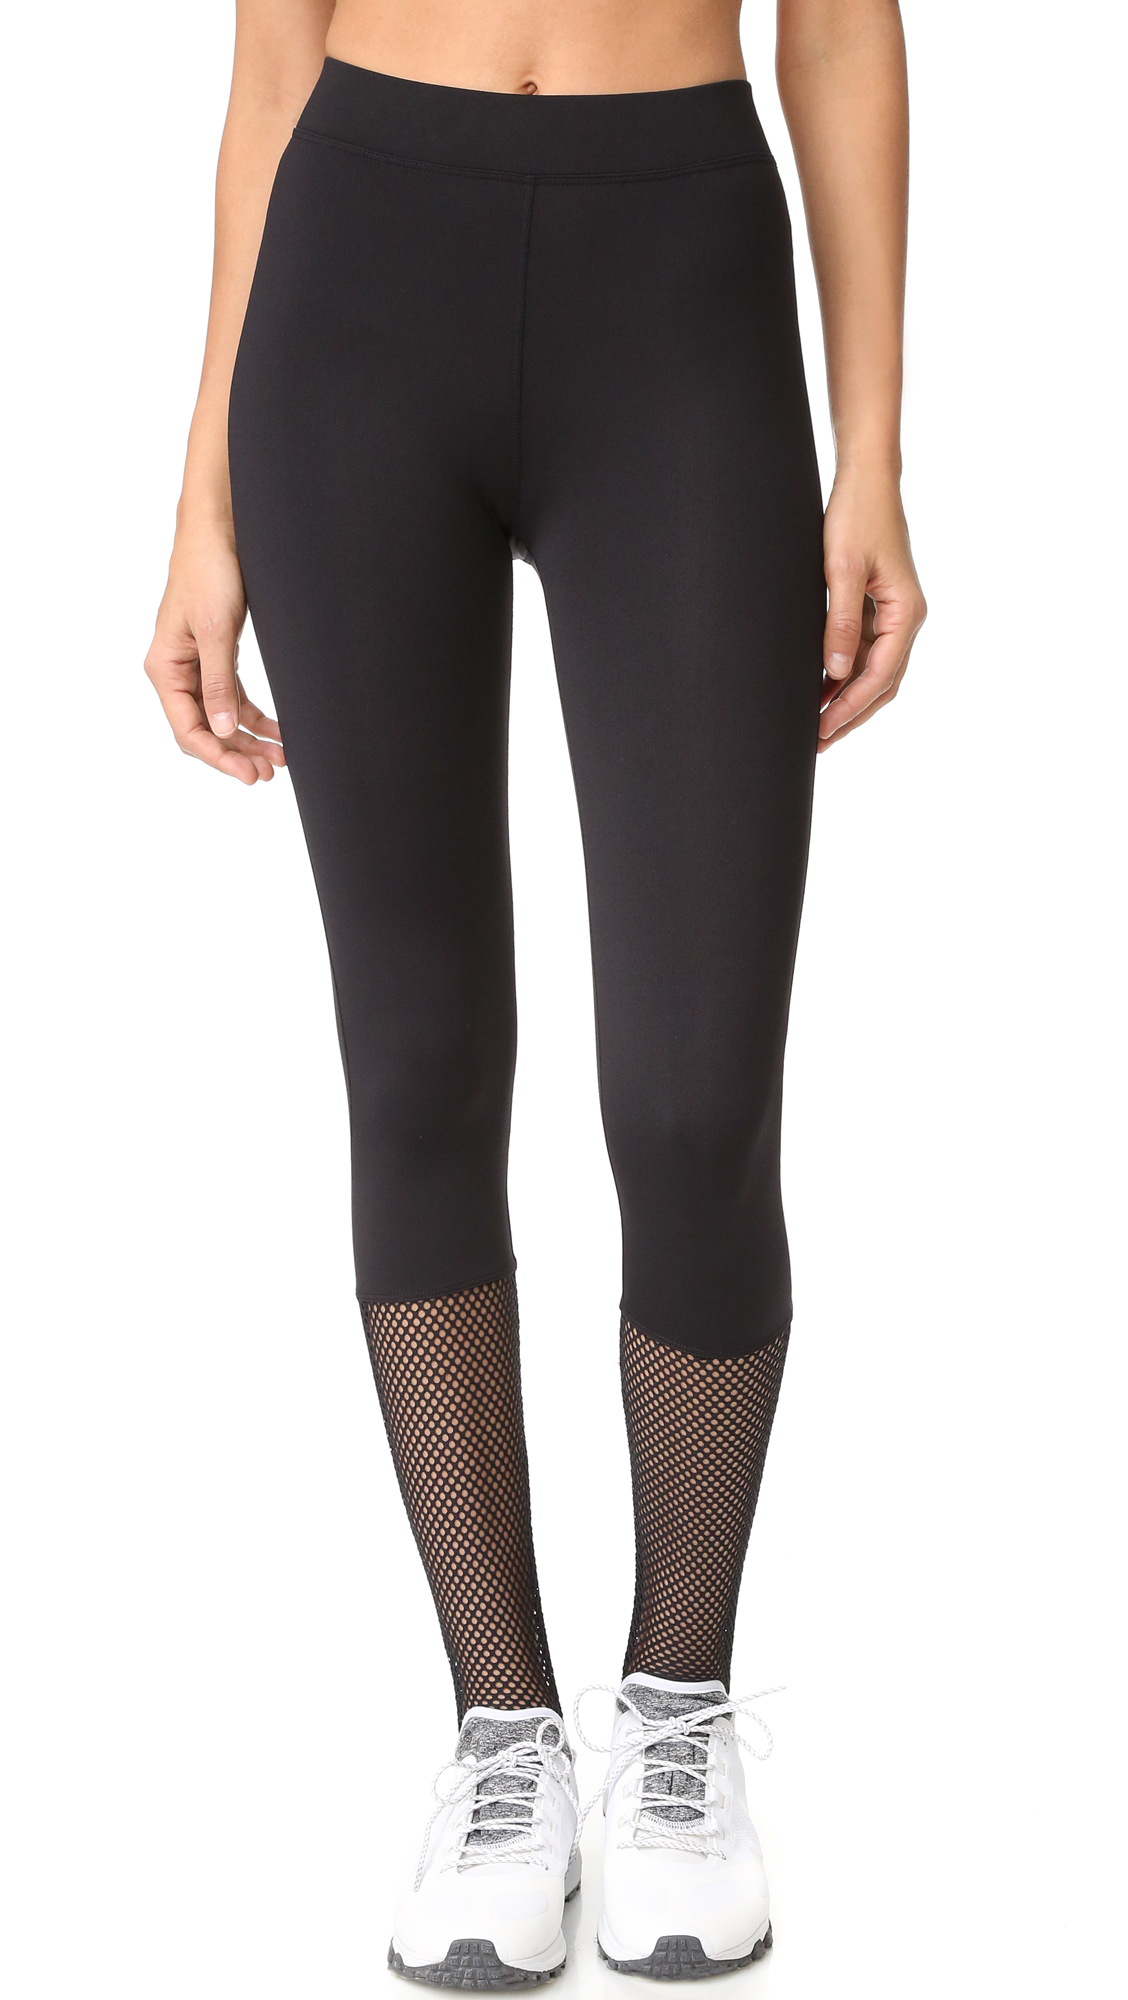 Mesh panels lend a graphic element to these sleek KORAL ACTIVEWEAR workout leggings. Covered elastic waist. Stirrup cuffs. Fabric: Performance jersey. Shell: 86% nylon/14% elastane. Trim: 89% polyester/11% spandex. Wash cold. Made in the USA. Imported materials. Measurements